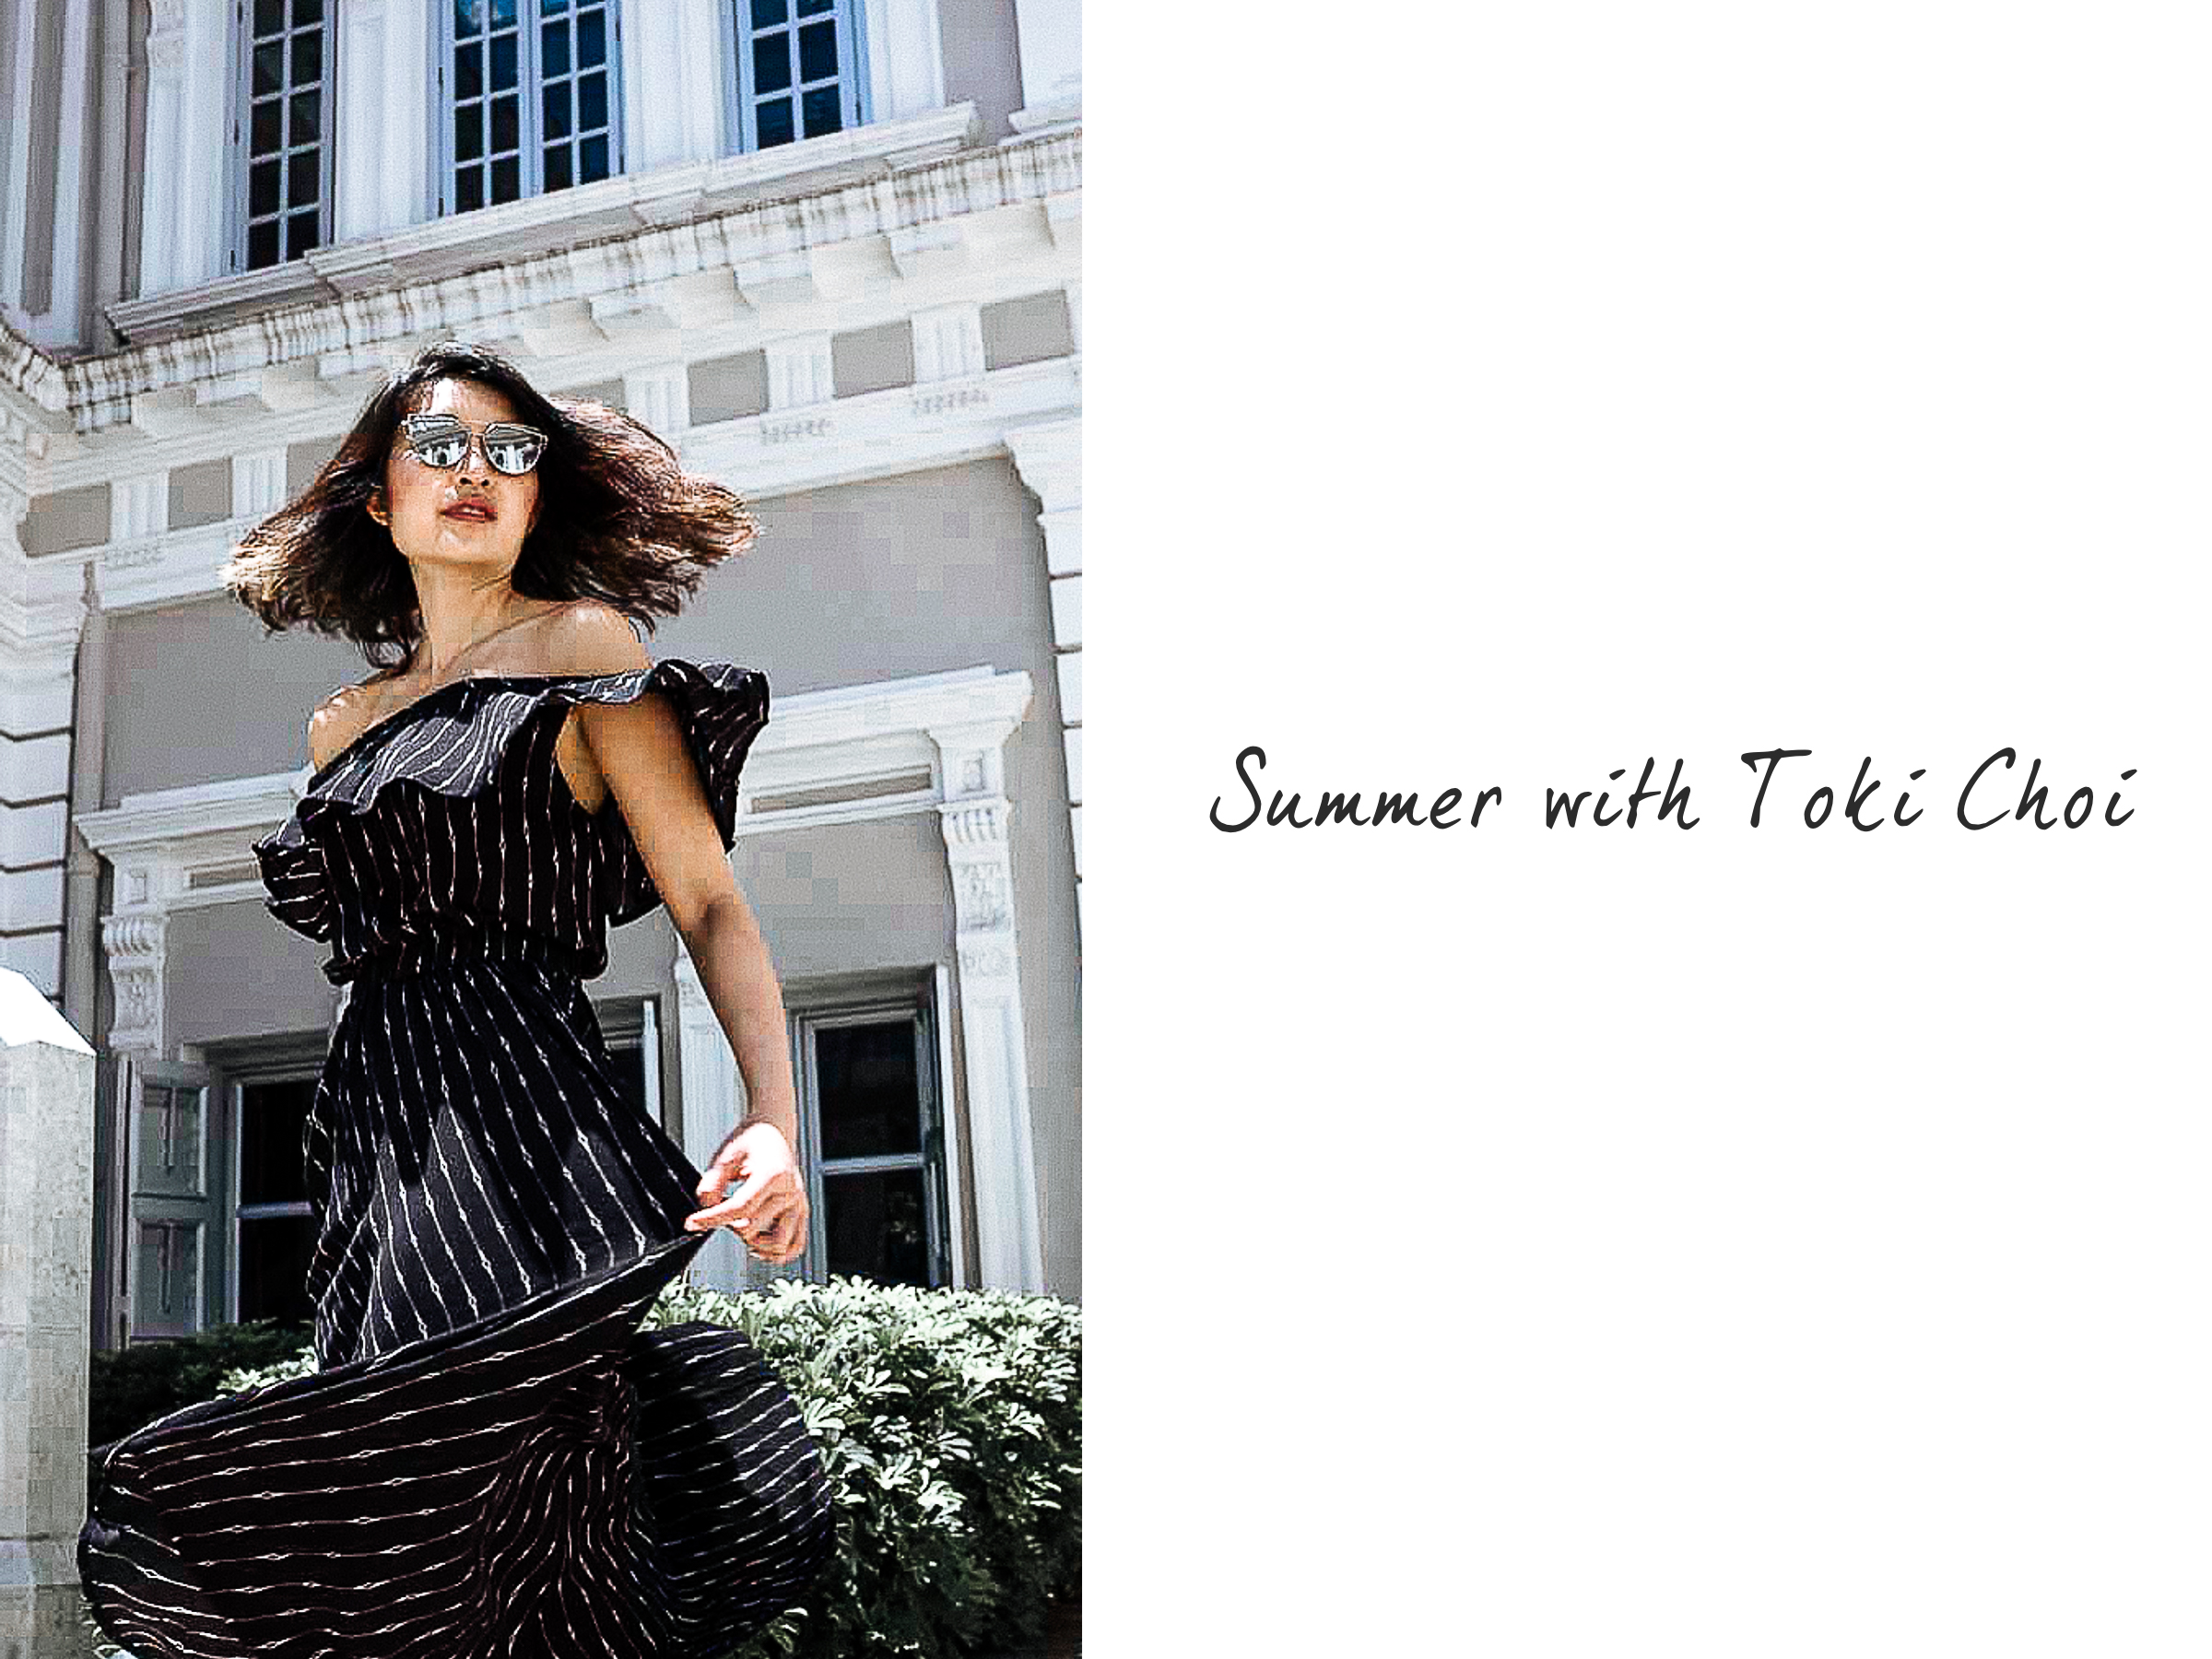 Summer with Toki Choi